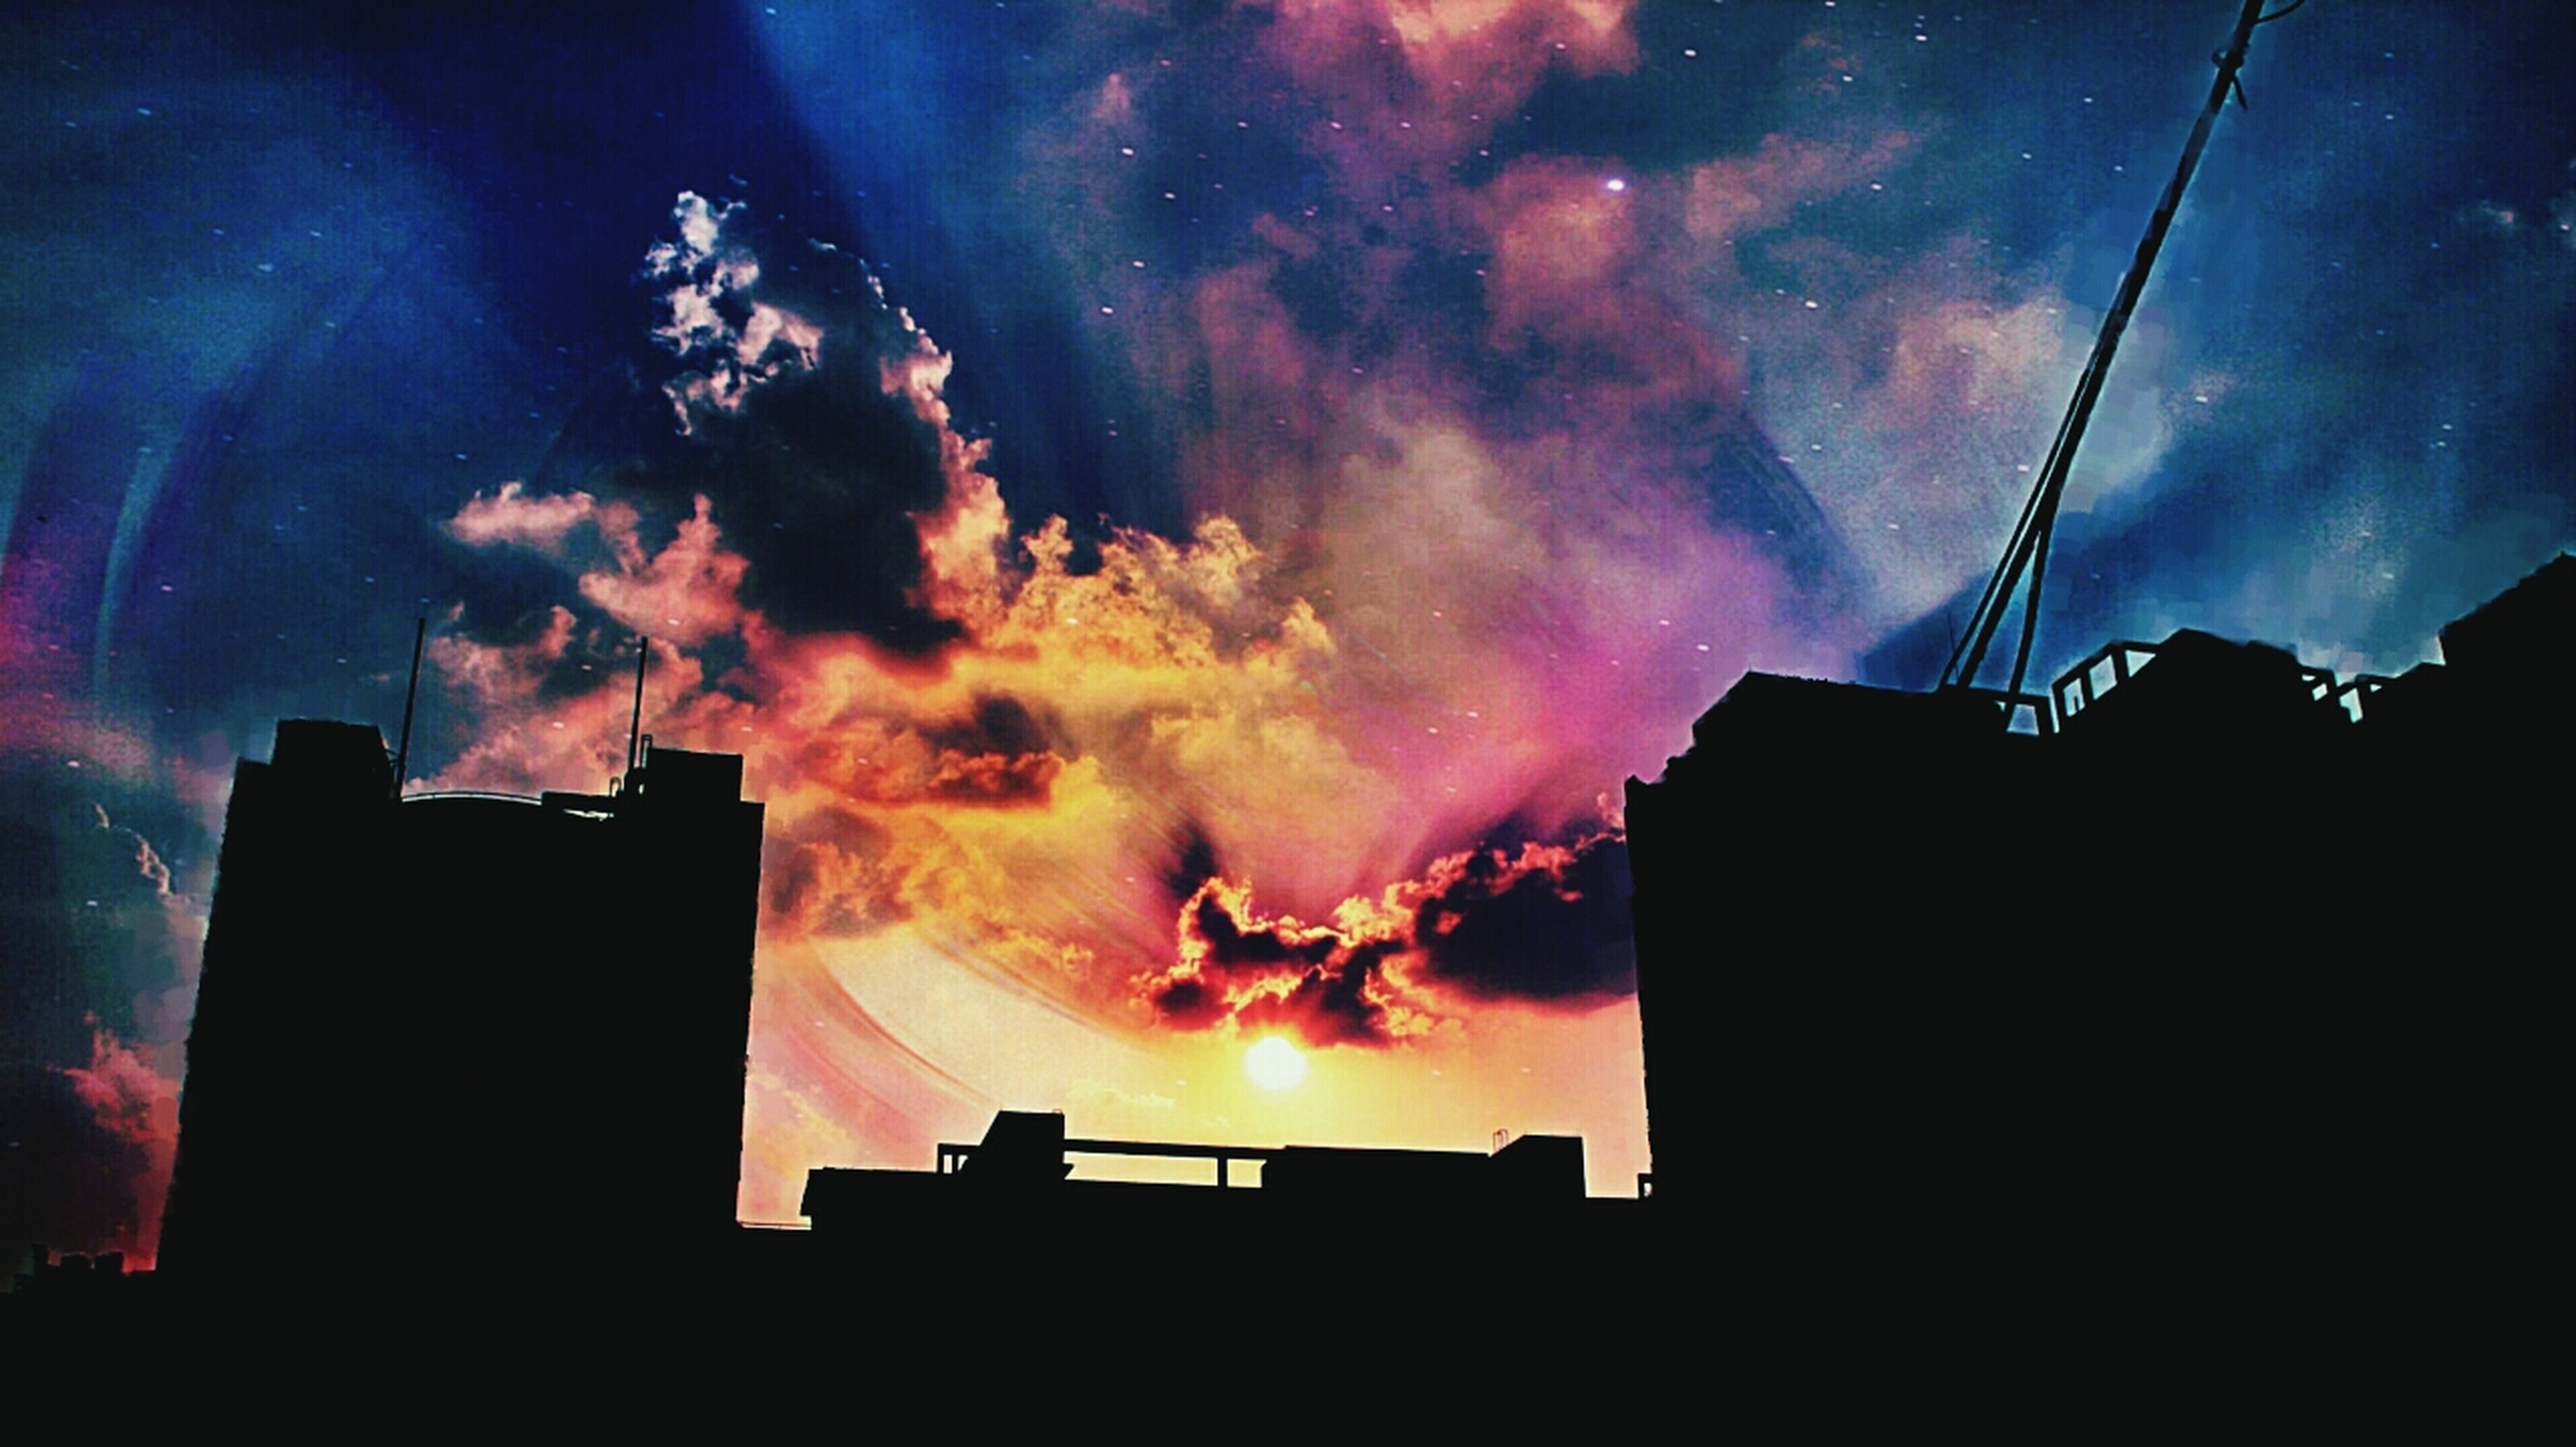 silhouette, sky, building exterior, built structure, architecture, cloud - sky, low angle view, dramatic sky, sunset, cloudy, storm cloud, weather, dusk, night, house, cloud, atmospheric mood, building, outdoors, dark